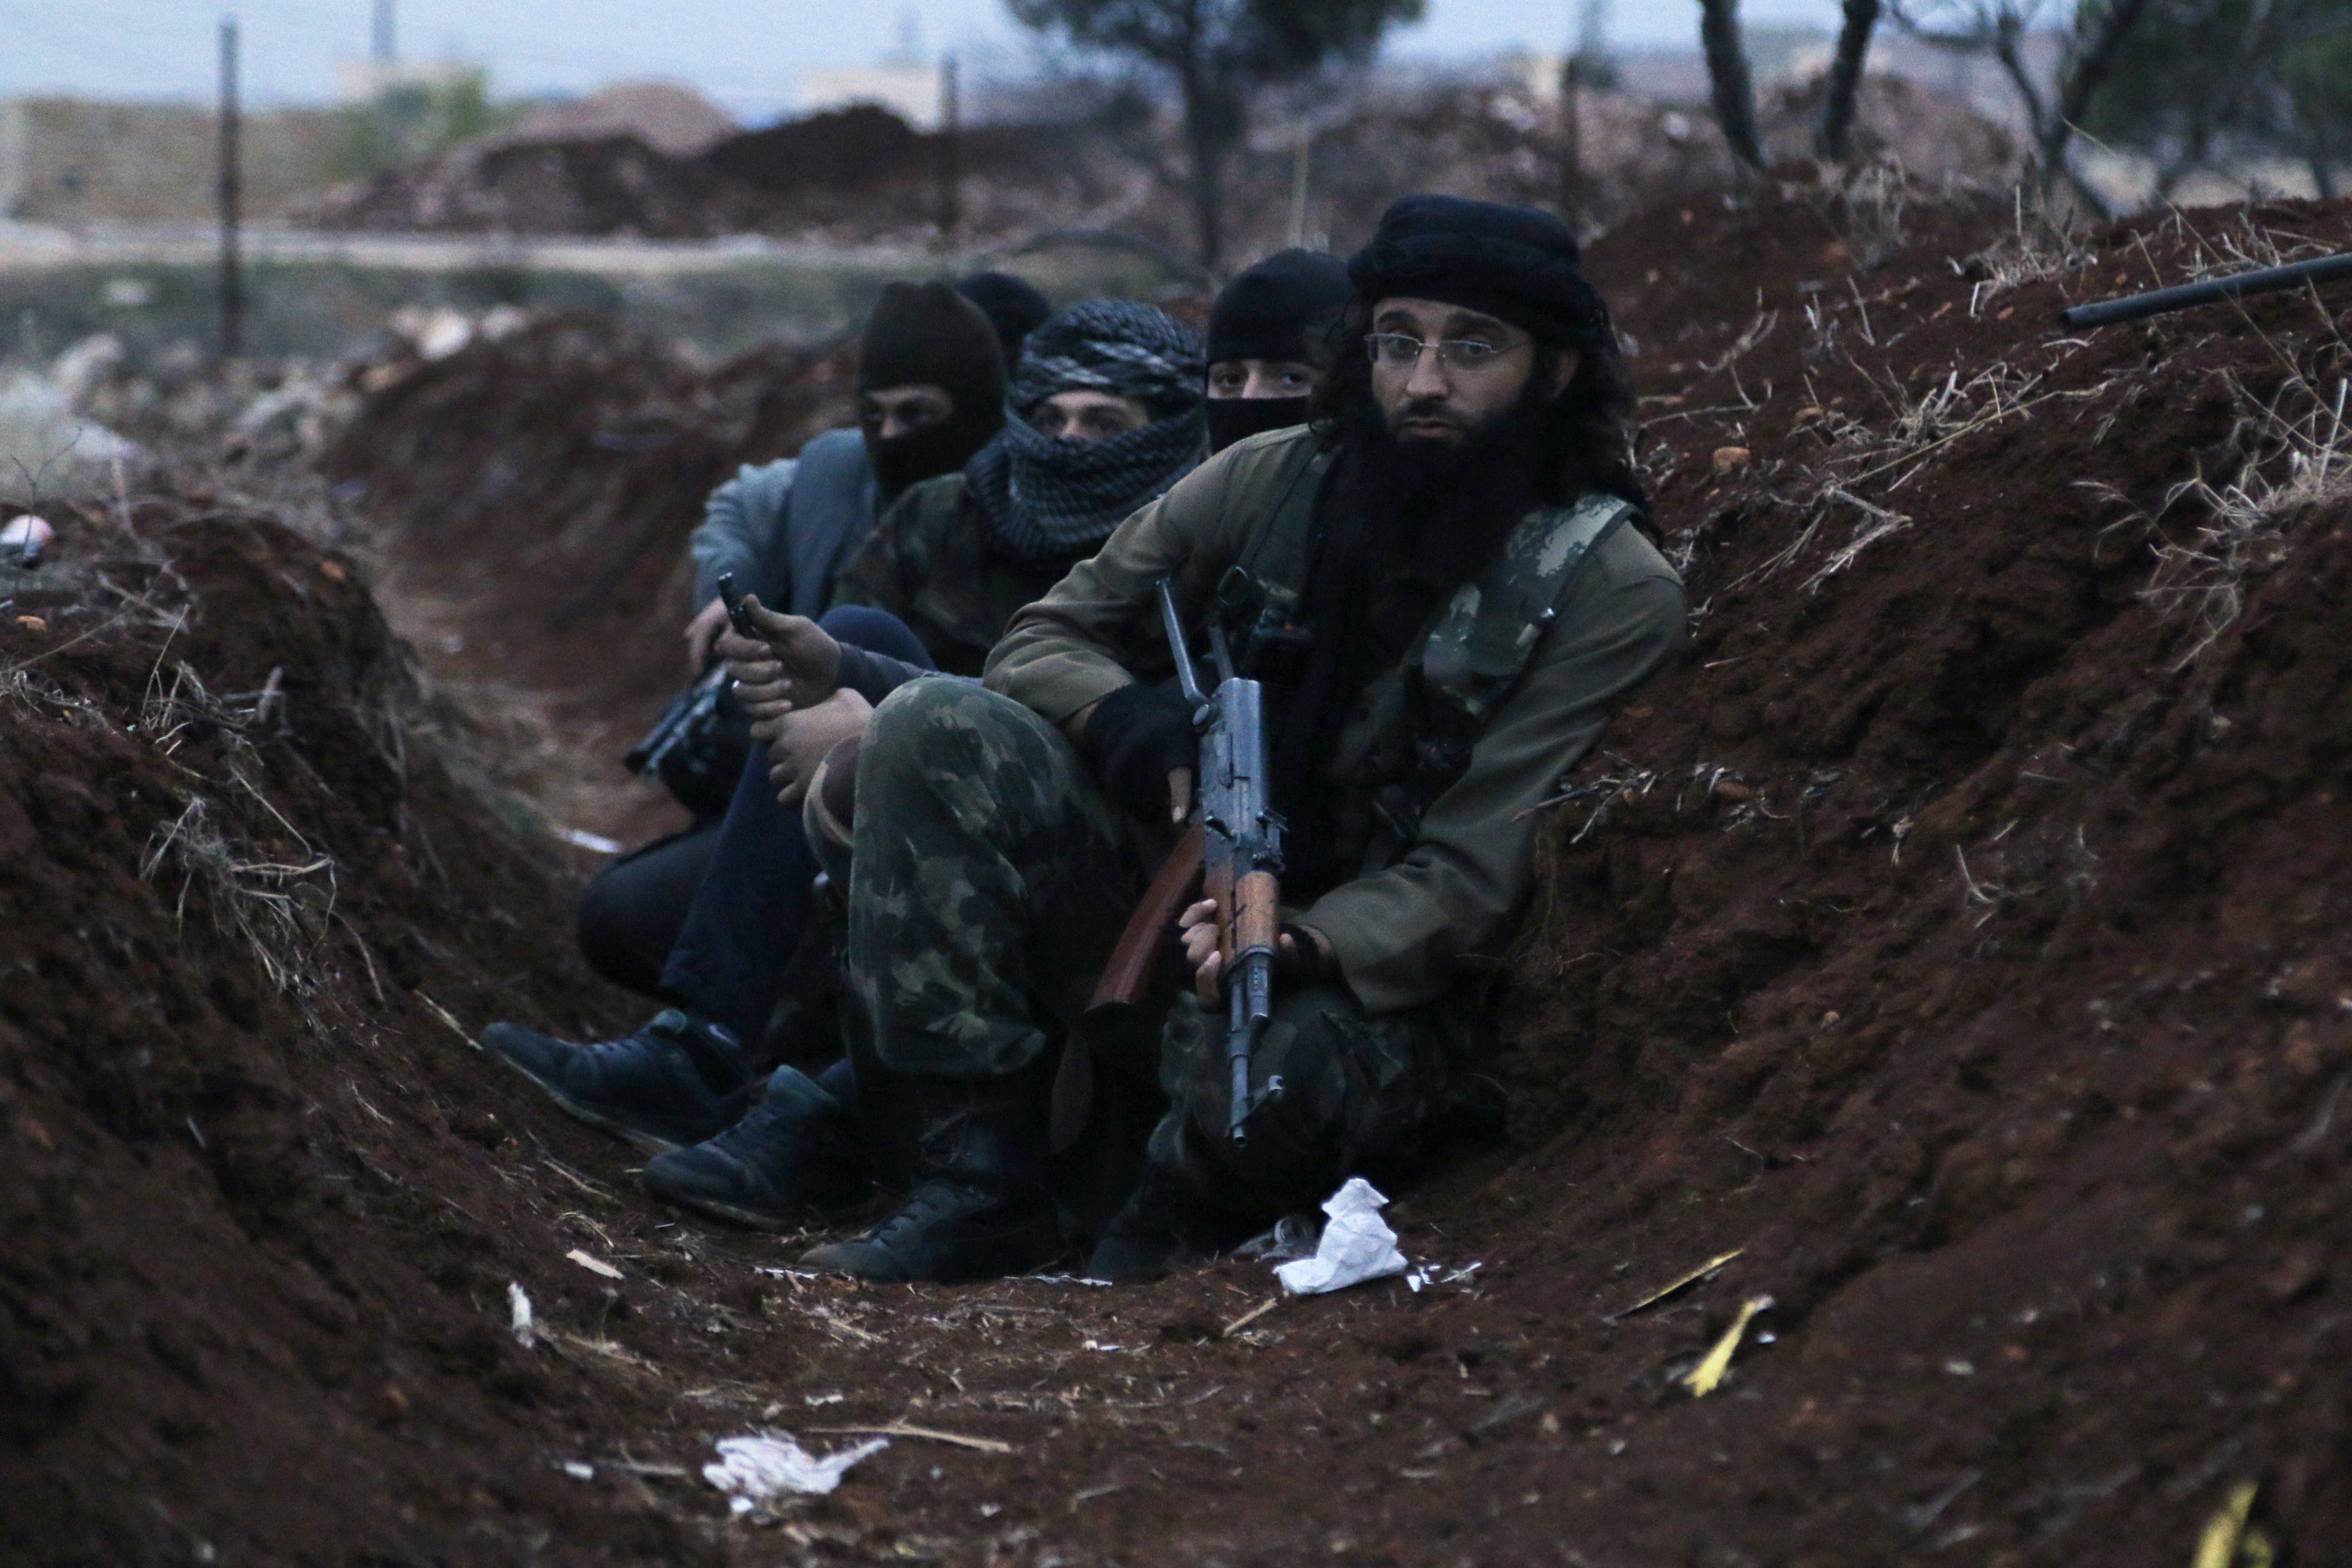 Members of al Qaeda's Nusra Front carry their weapons as they sit in a trench near al-Zahra village, north of Aleppo city, November 25, 2014. (REUTERS/Hosam Katan)